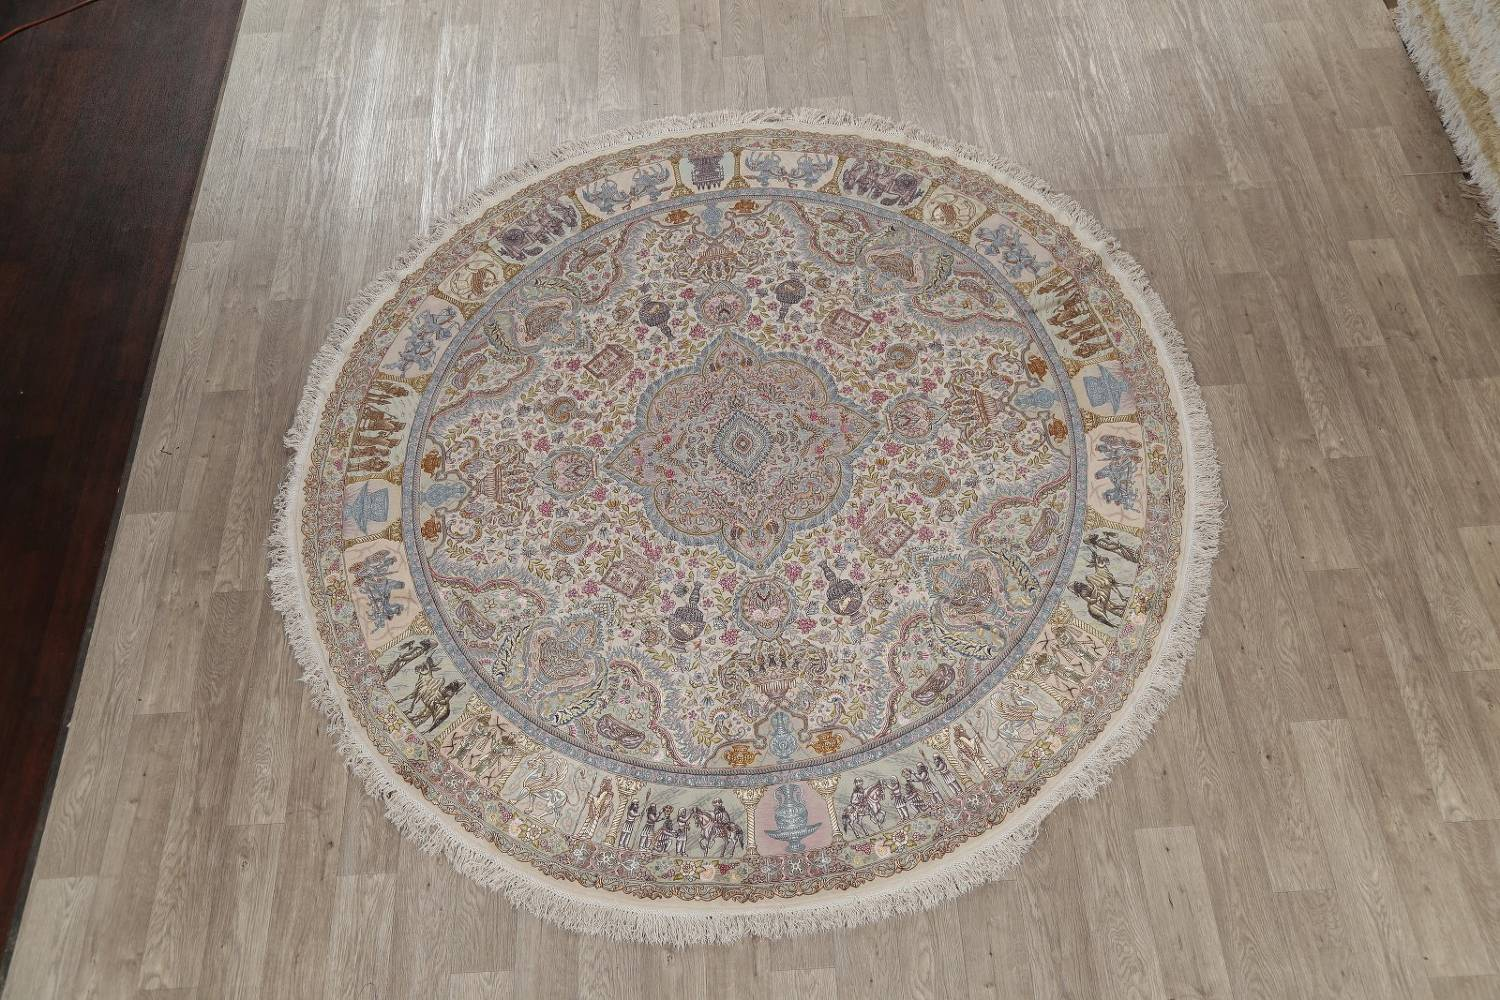 Antique Vegetable Dye Tabriz Persian Hand-Knotted 8x8 Wool Silk Round Rug image 2